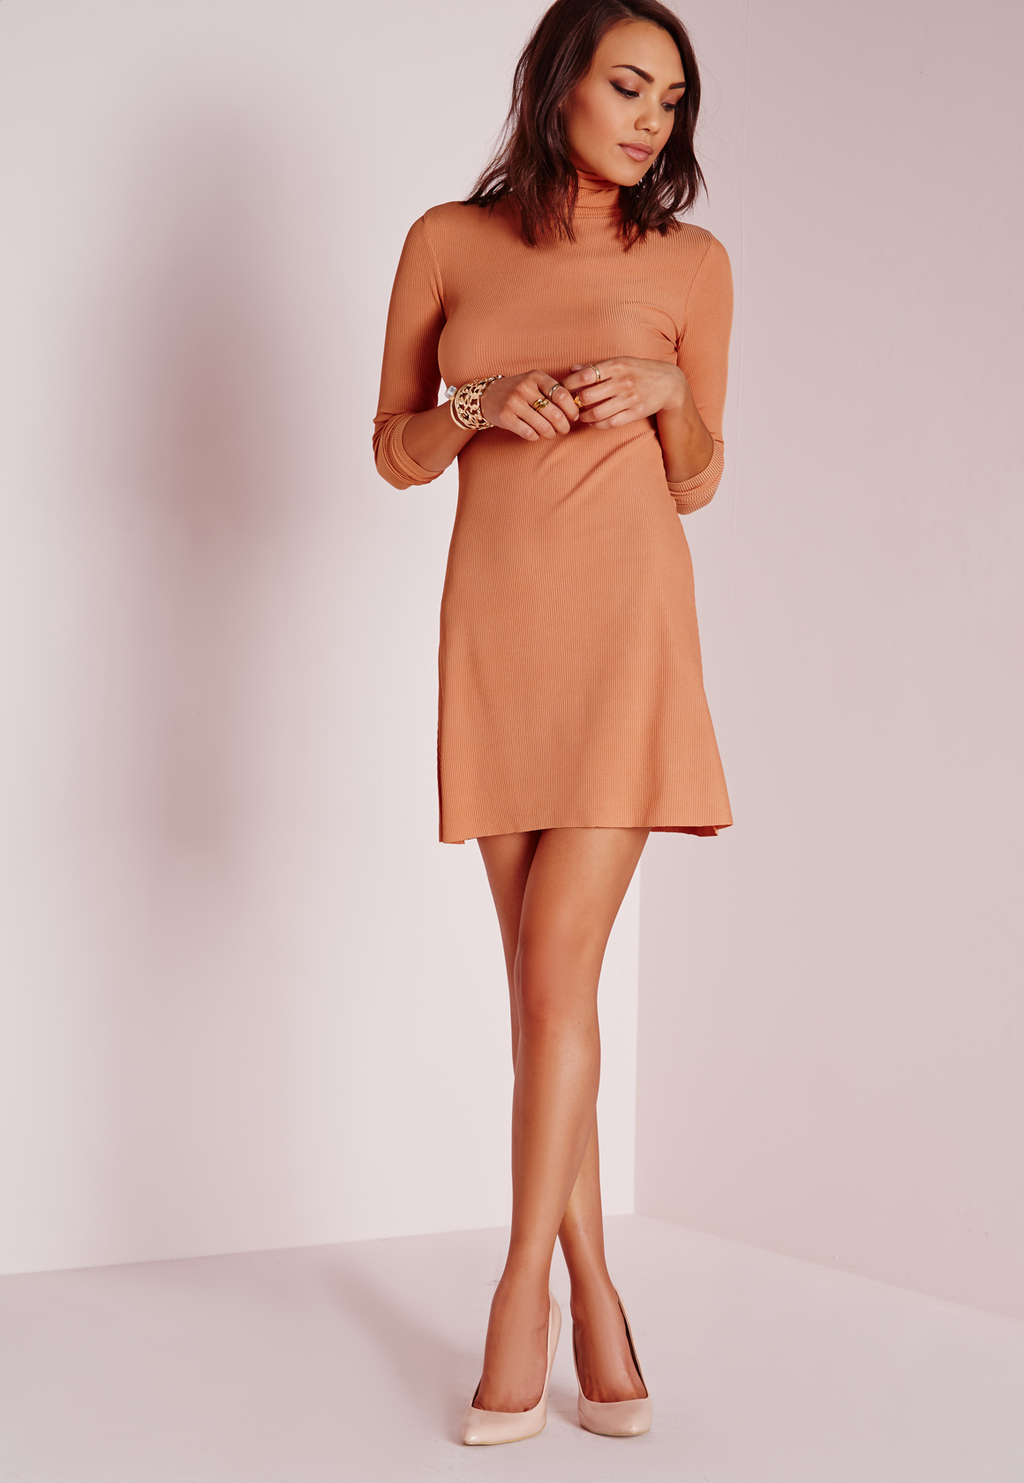 Roll Neck Ribbed Dress Salmon, Salmon - length: mid thigh; pattern: plain; neckline: high neck; predominant colour: camel; occasions: casual; fit: fitted at waist & bust; style: fit & flare; fibres: polyester/polyamide - stretch; sleeve length: 3/4 length; sleeve style: standard; pattern type: fabric; texture group: jersey - stretchy/drapey; season: s/s 2016; wardrobe: basic